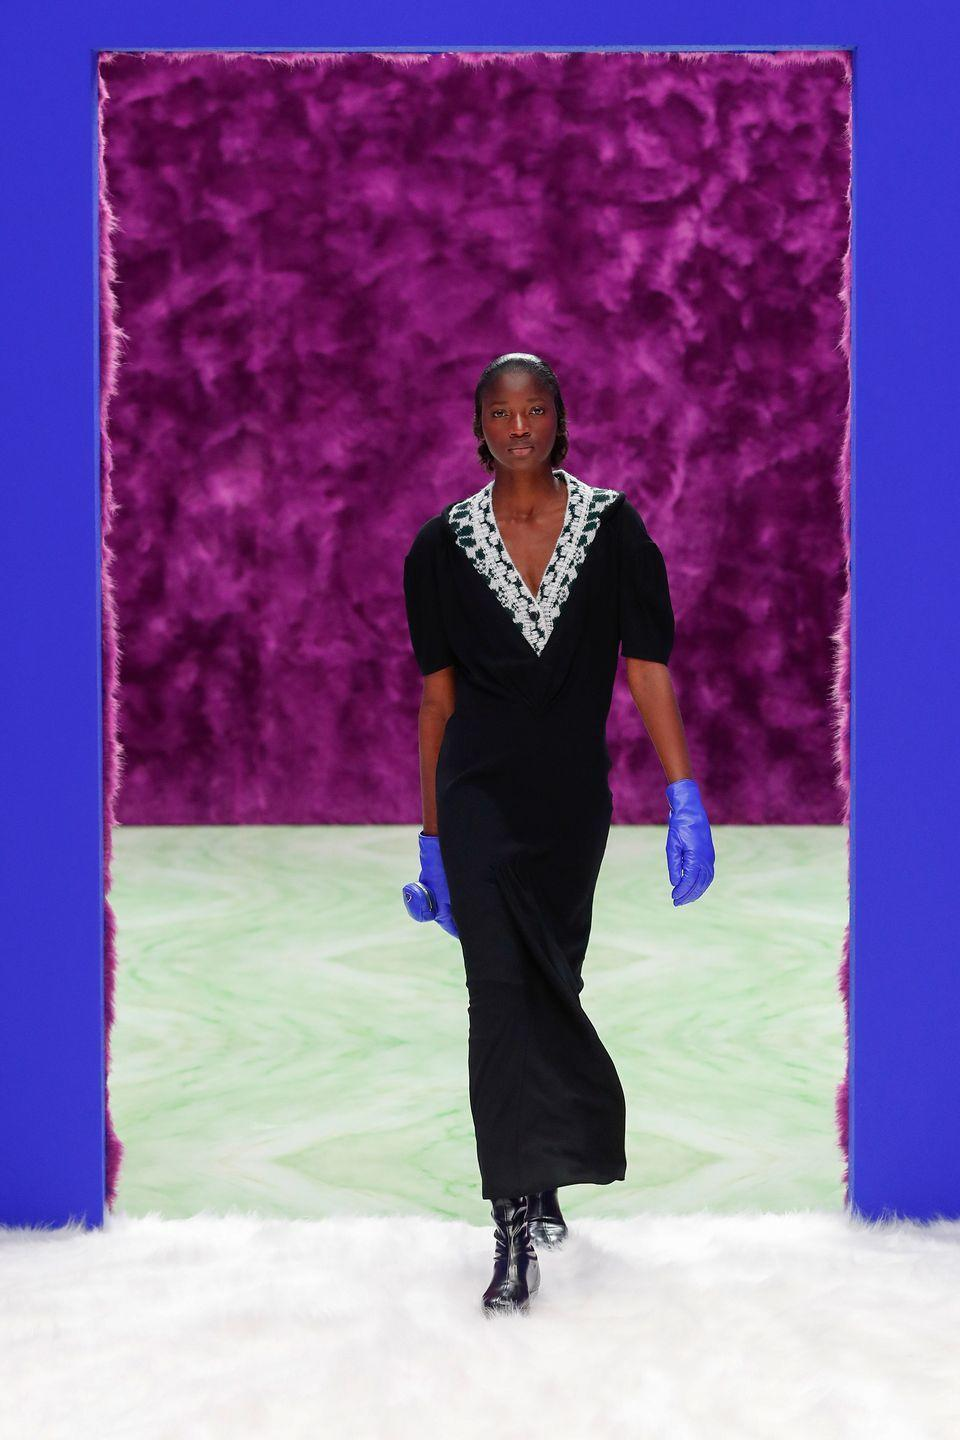 """<p>The latest installment from the partnership made in fashion dreams—Miuccia Prada and Raf Simons—is inspired by change, transformation, and opening possibilities. Those ideas live in jacquard knits, statement faux furs, menswear inspired suiting, bold colored coats, and feminine skirt suits. The looks are only seemingly simple—with bold hits of color like cobalt and orange, against black, brown, and white. Models walked on an interior landscape created out of vibrant faux fur and marble by Rem Koolhaas and AMO. All of it will be eventually donated to Meta, a circular economy project based in Milan, """"which offers<br>sustainable solutions to waste disposal within ephemeral events by collecting and recovering materials for selling and rentals."""" This is the future—clothes to collect and not discard, an awareness around waste, a venture into creativity with thought for what happens next.<em><br>-Kerry Pieri</em></p>"""